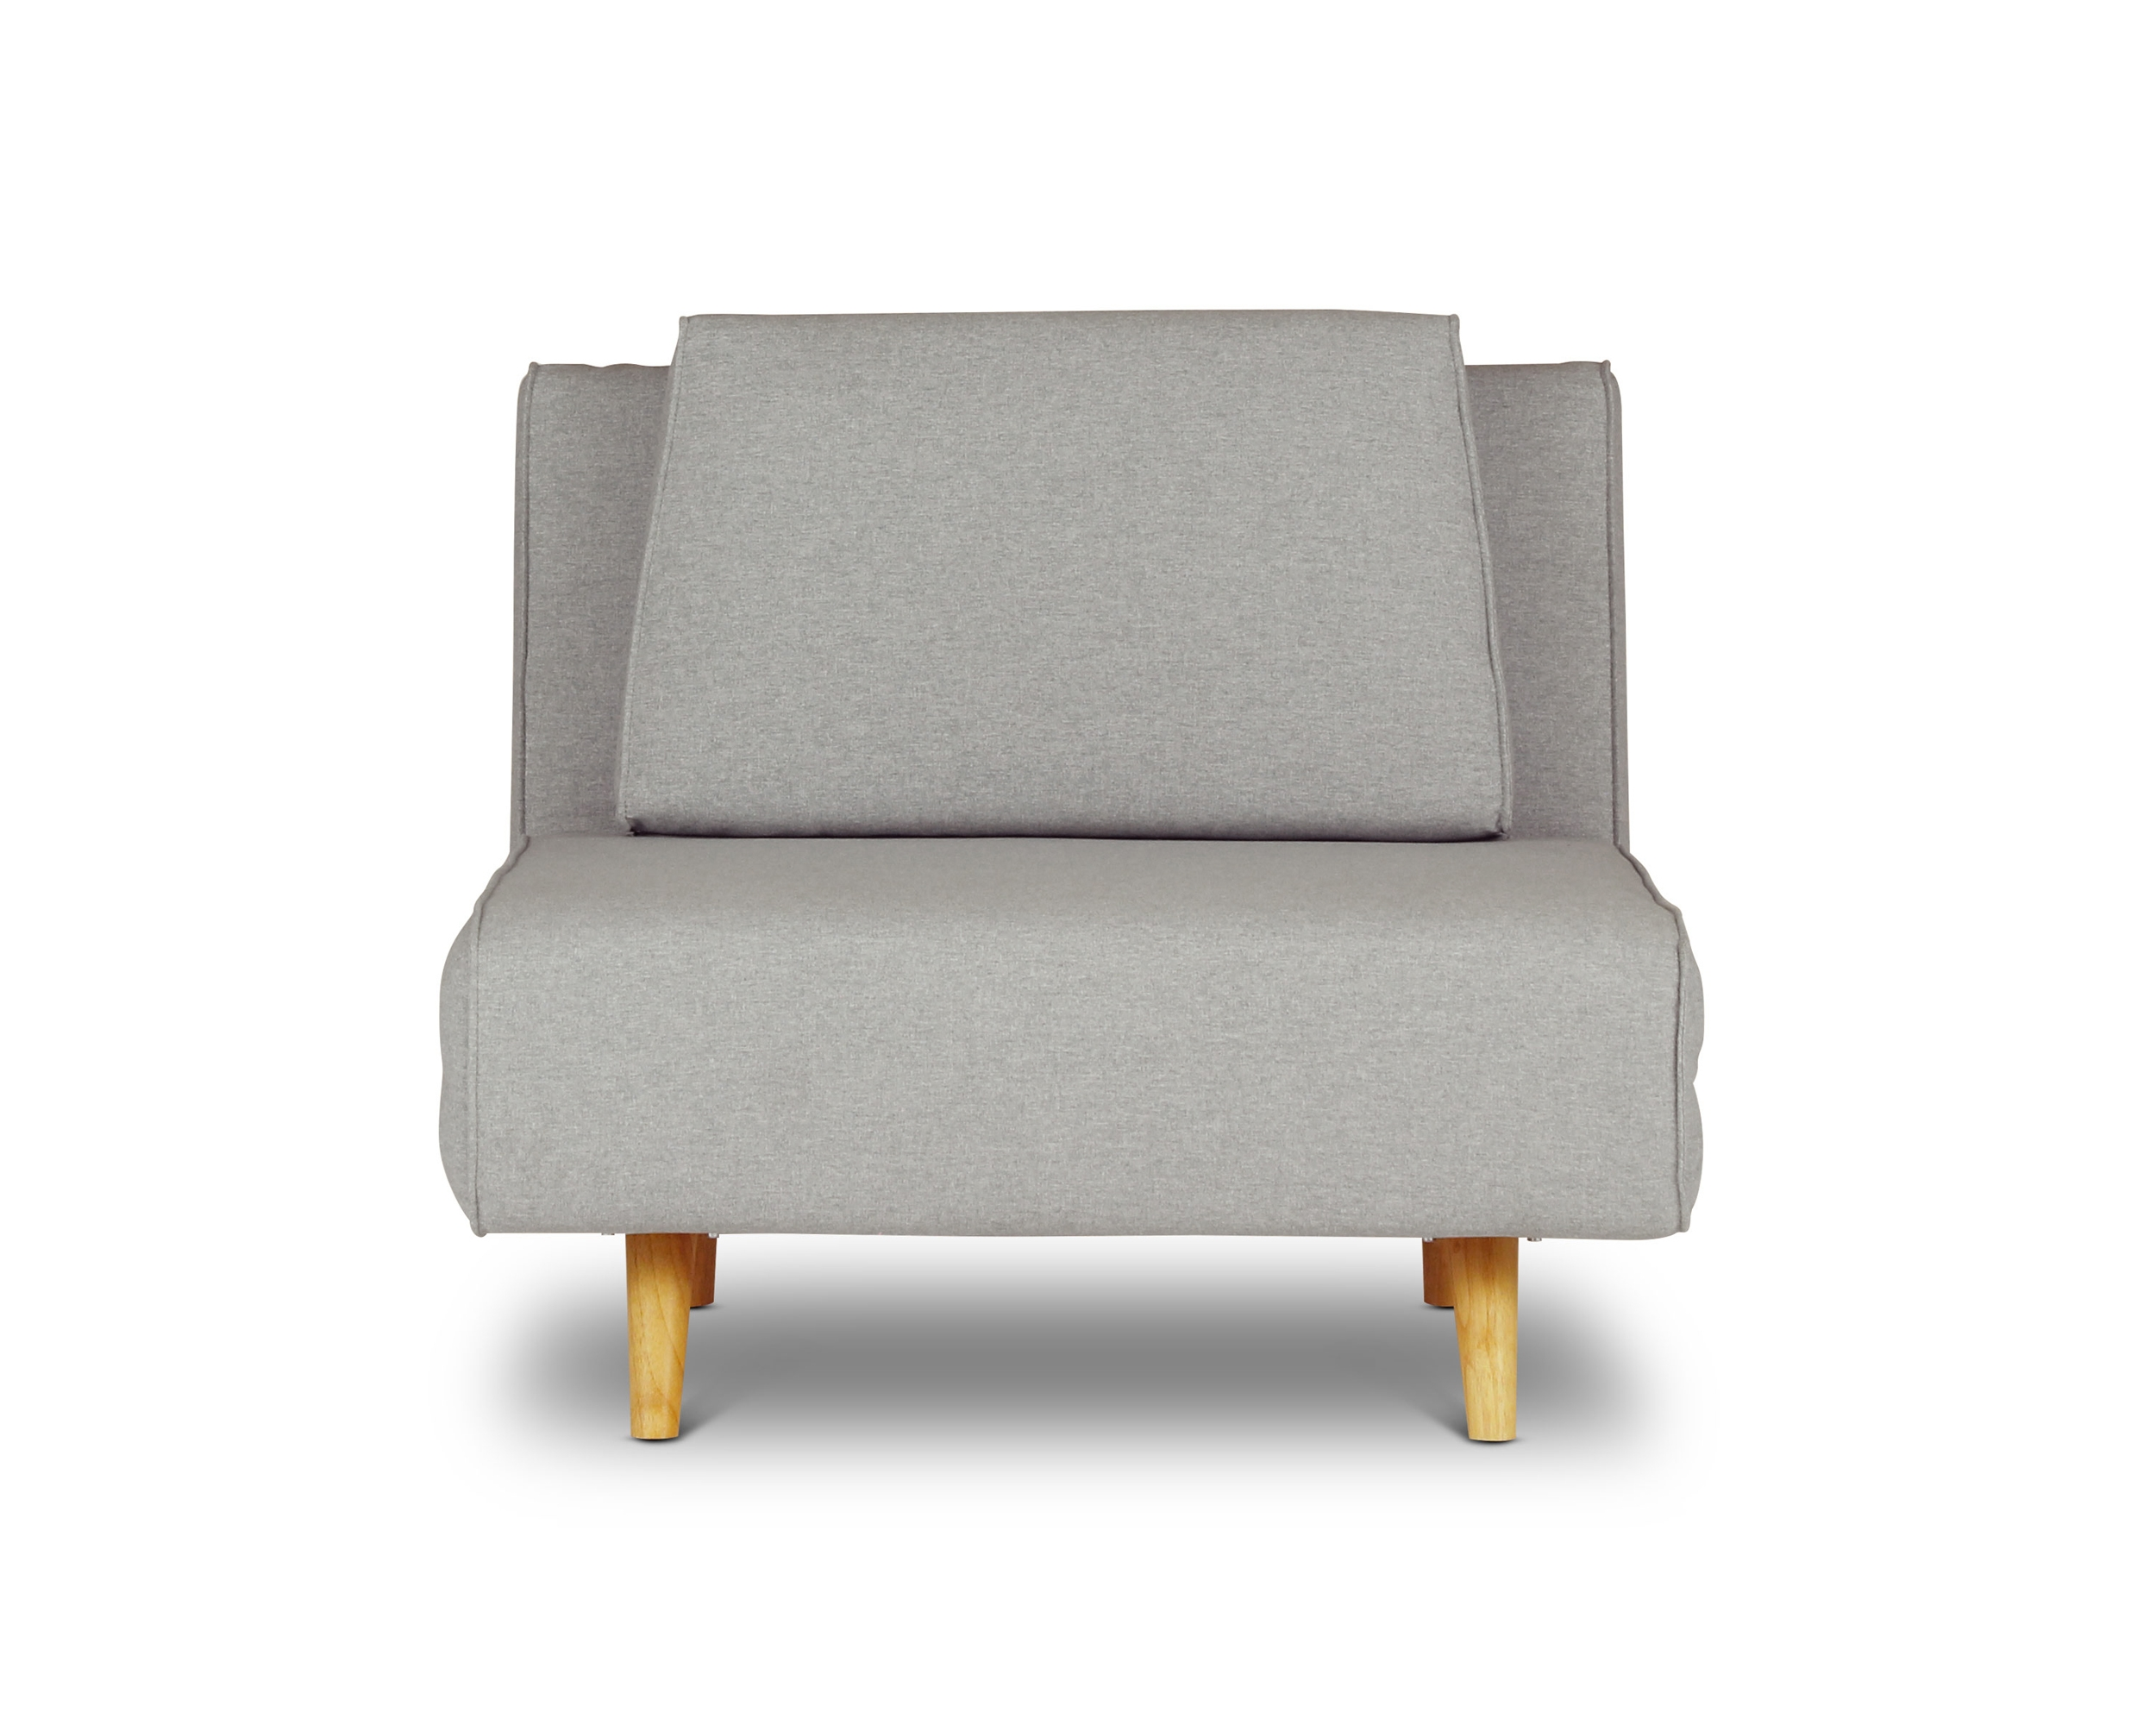 Single Sofa Bed Chair Au Hereo Sofa Throughout Single Chair Sofa Bed (Image 10 of 15)